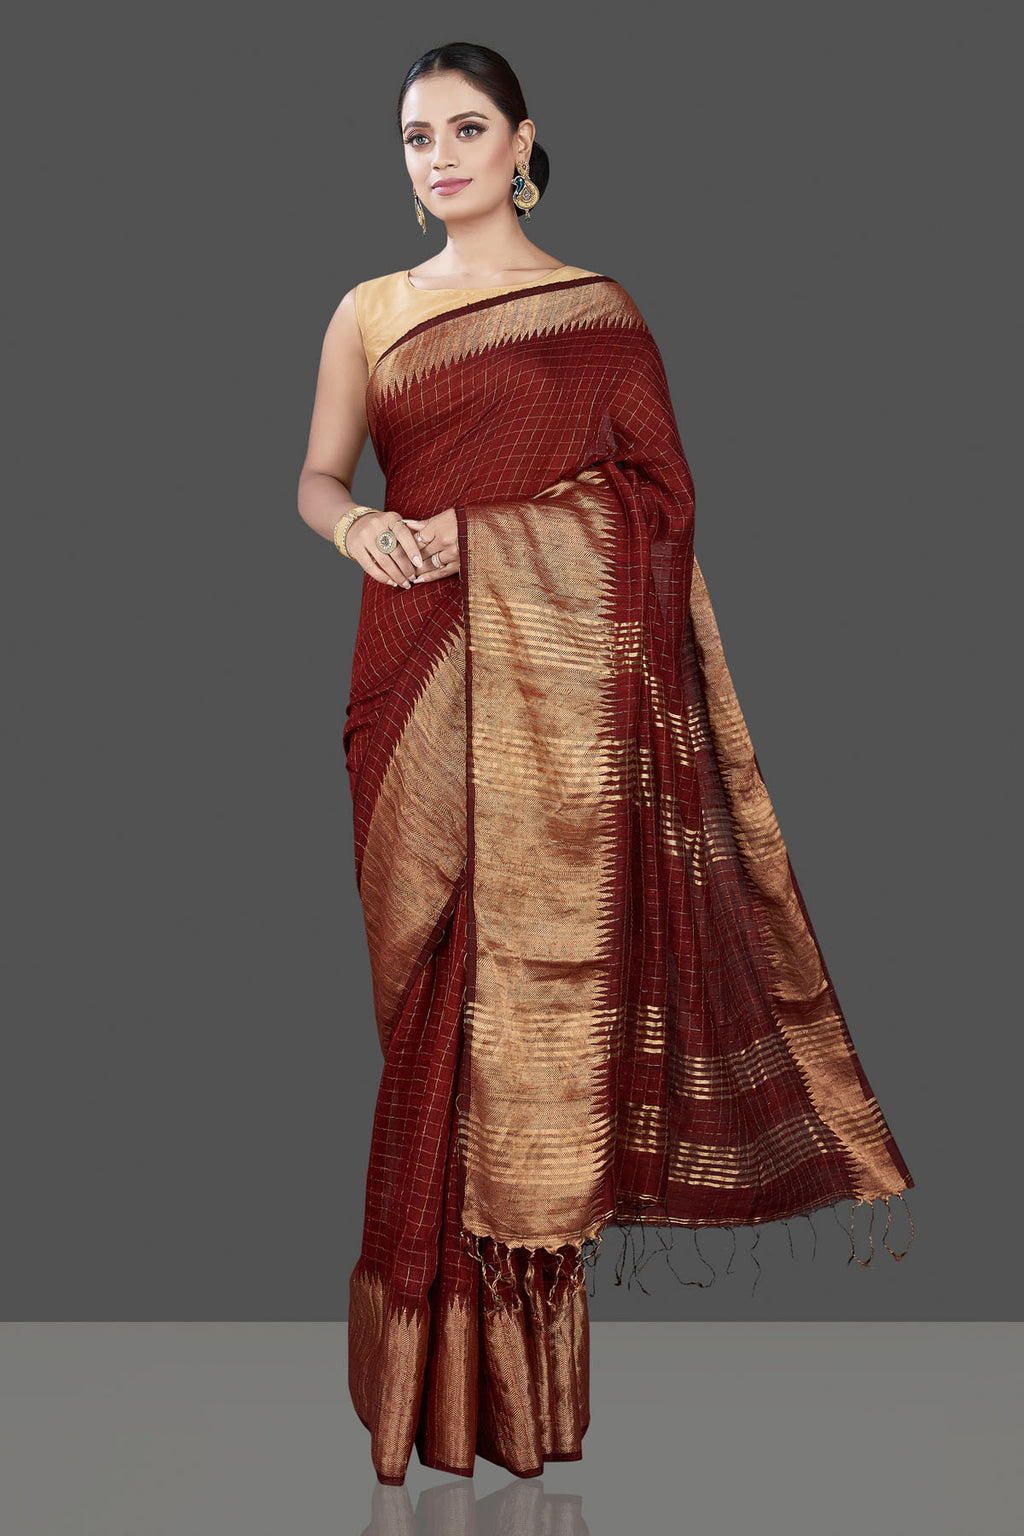 Buy stunning brown check matka silk saree online in USA with golden zari border. Be the talk of the occasion in exquisite designer sarees, pure silk sarees, tussar saris, embroidered sarees, handloom saris from Pure Elegance Indian fashion store in USA.-full view